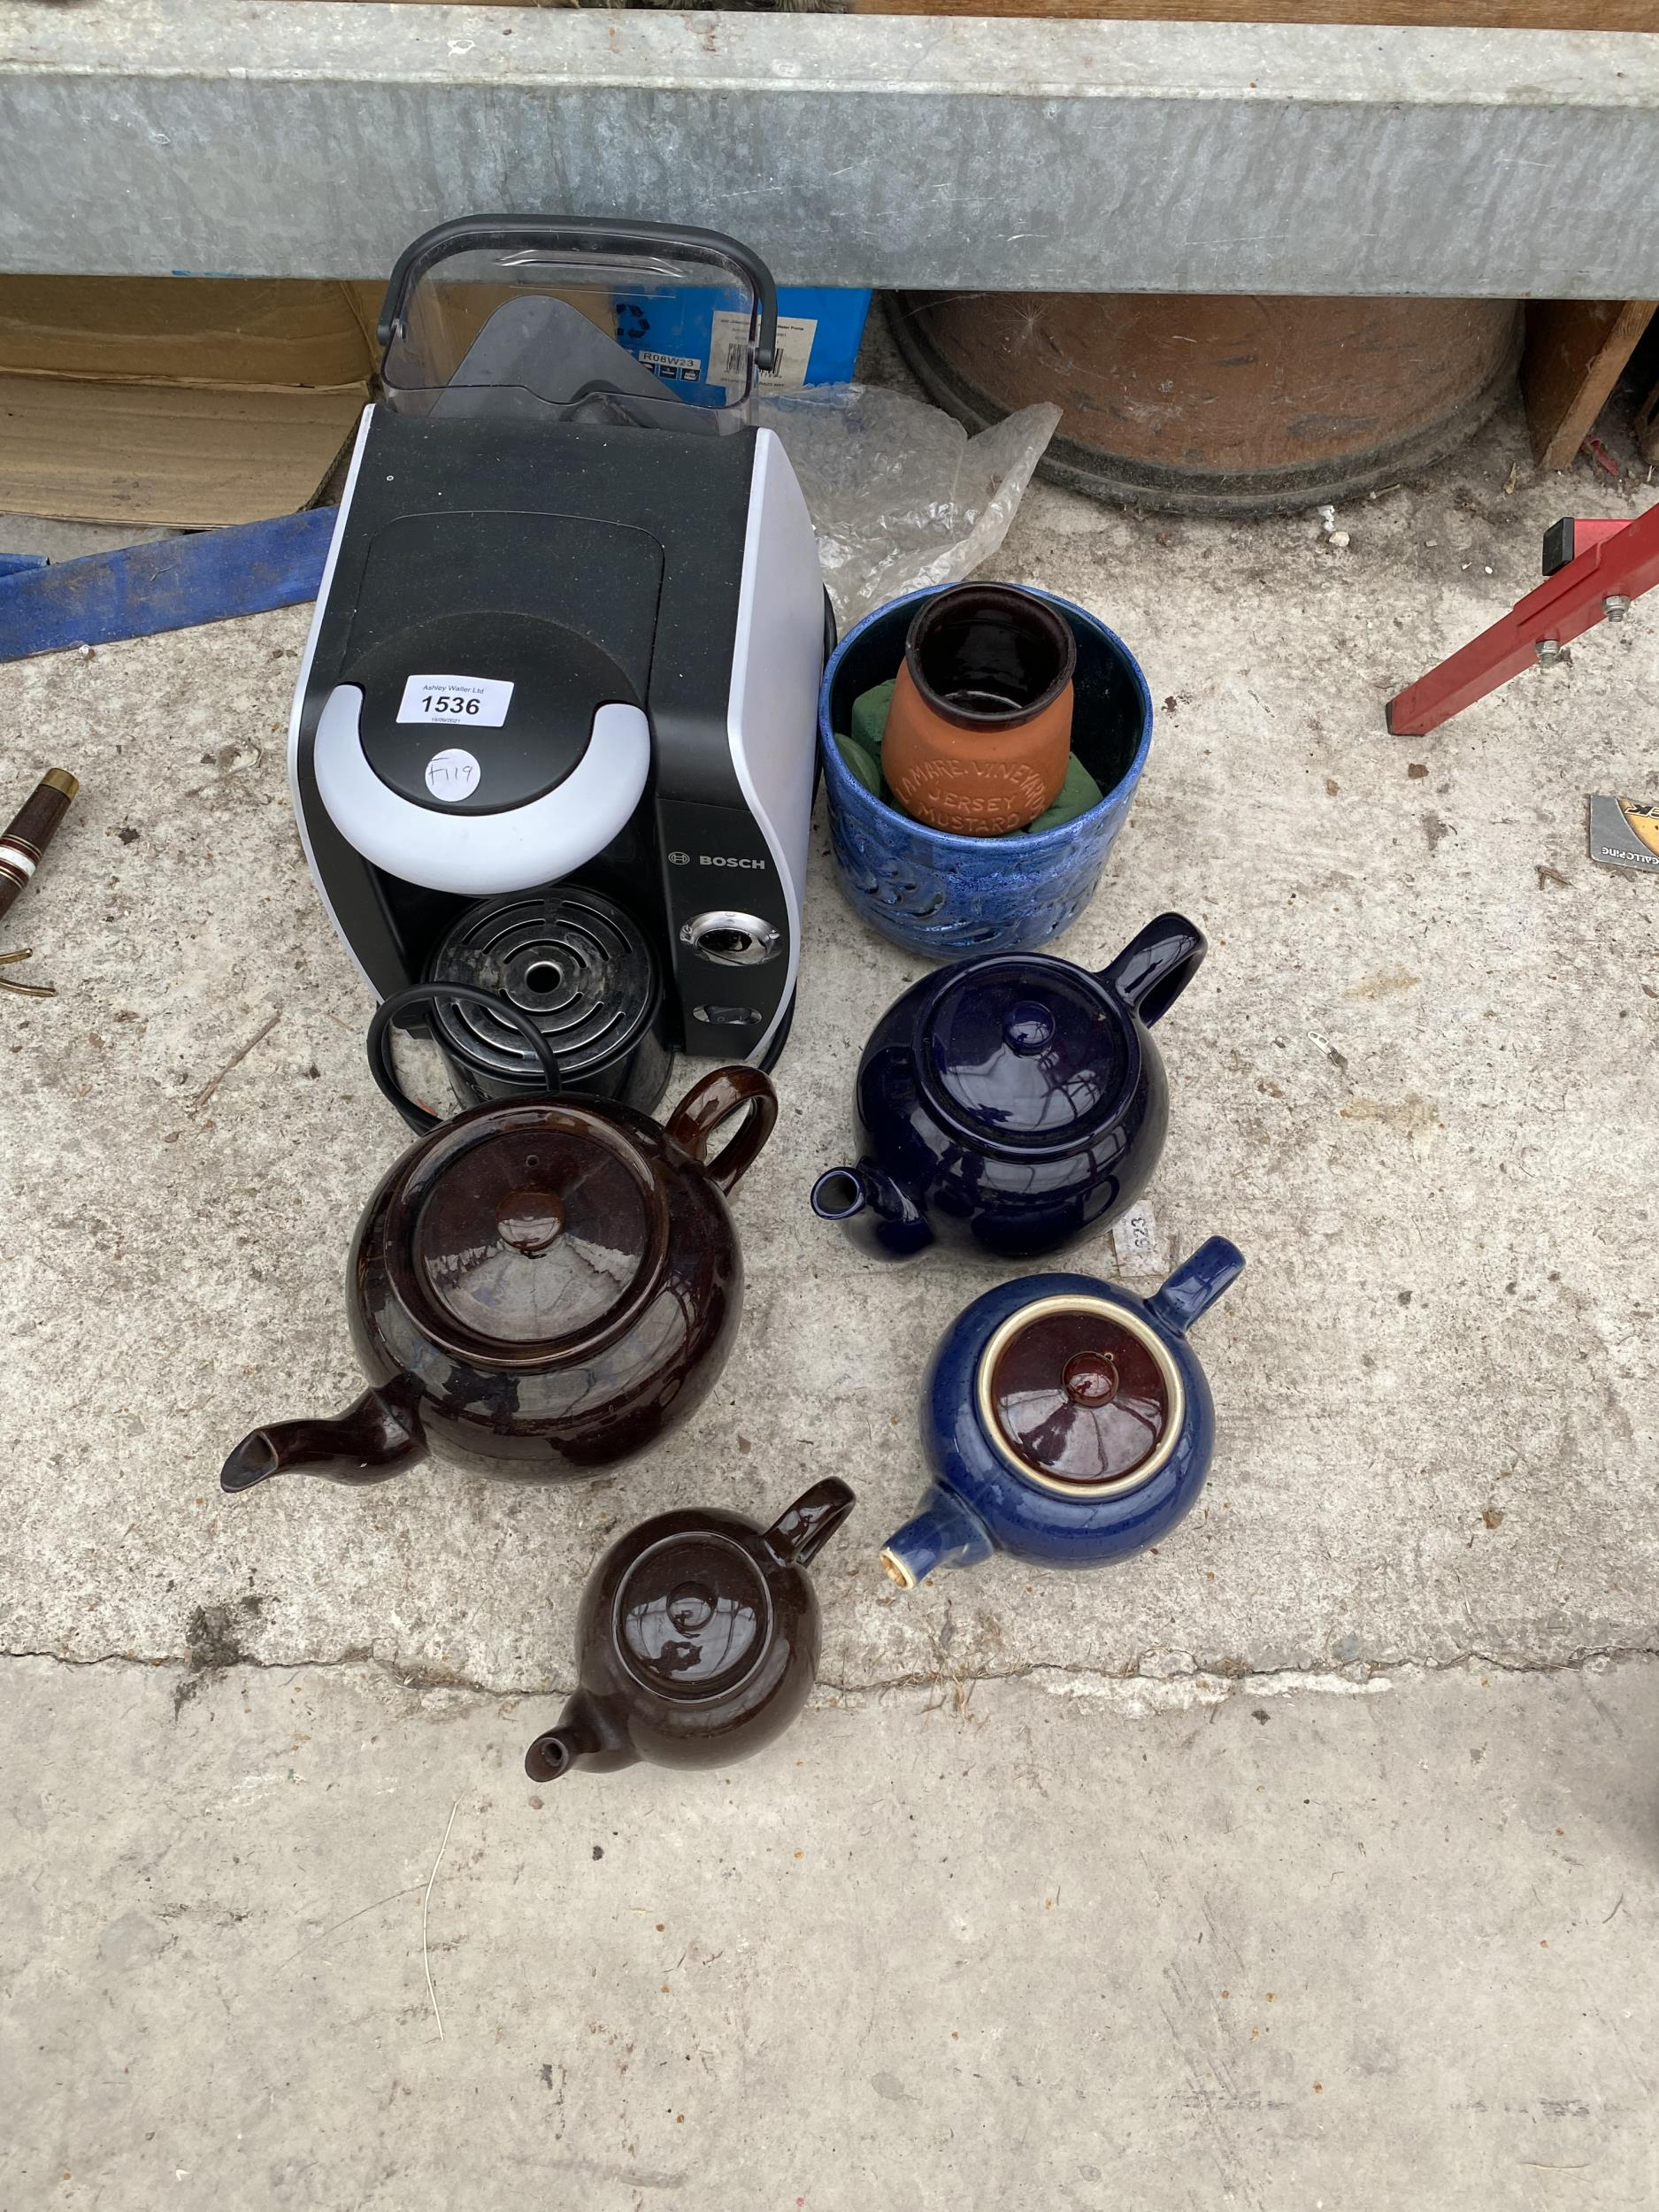 A COFFEE MAKER AND VARIOUS TEAPOTS